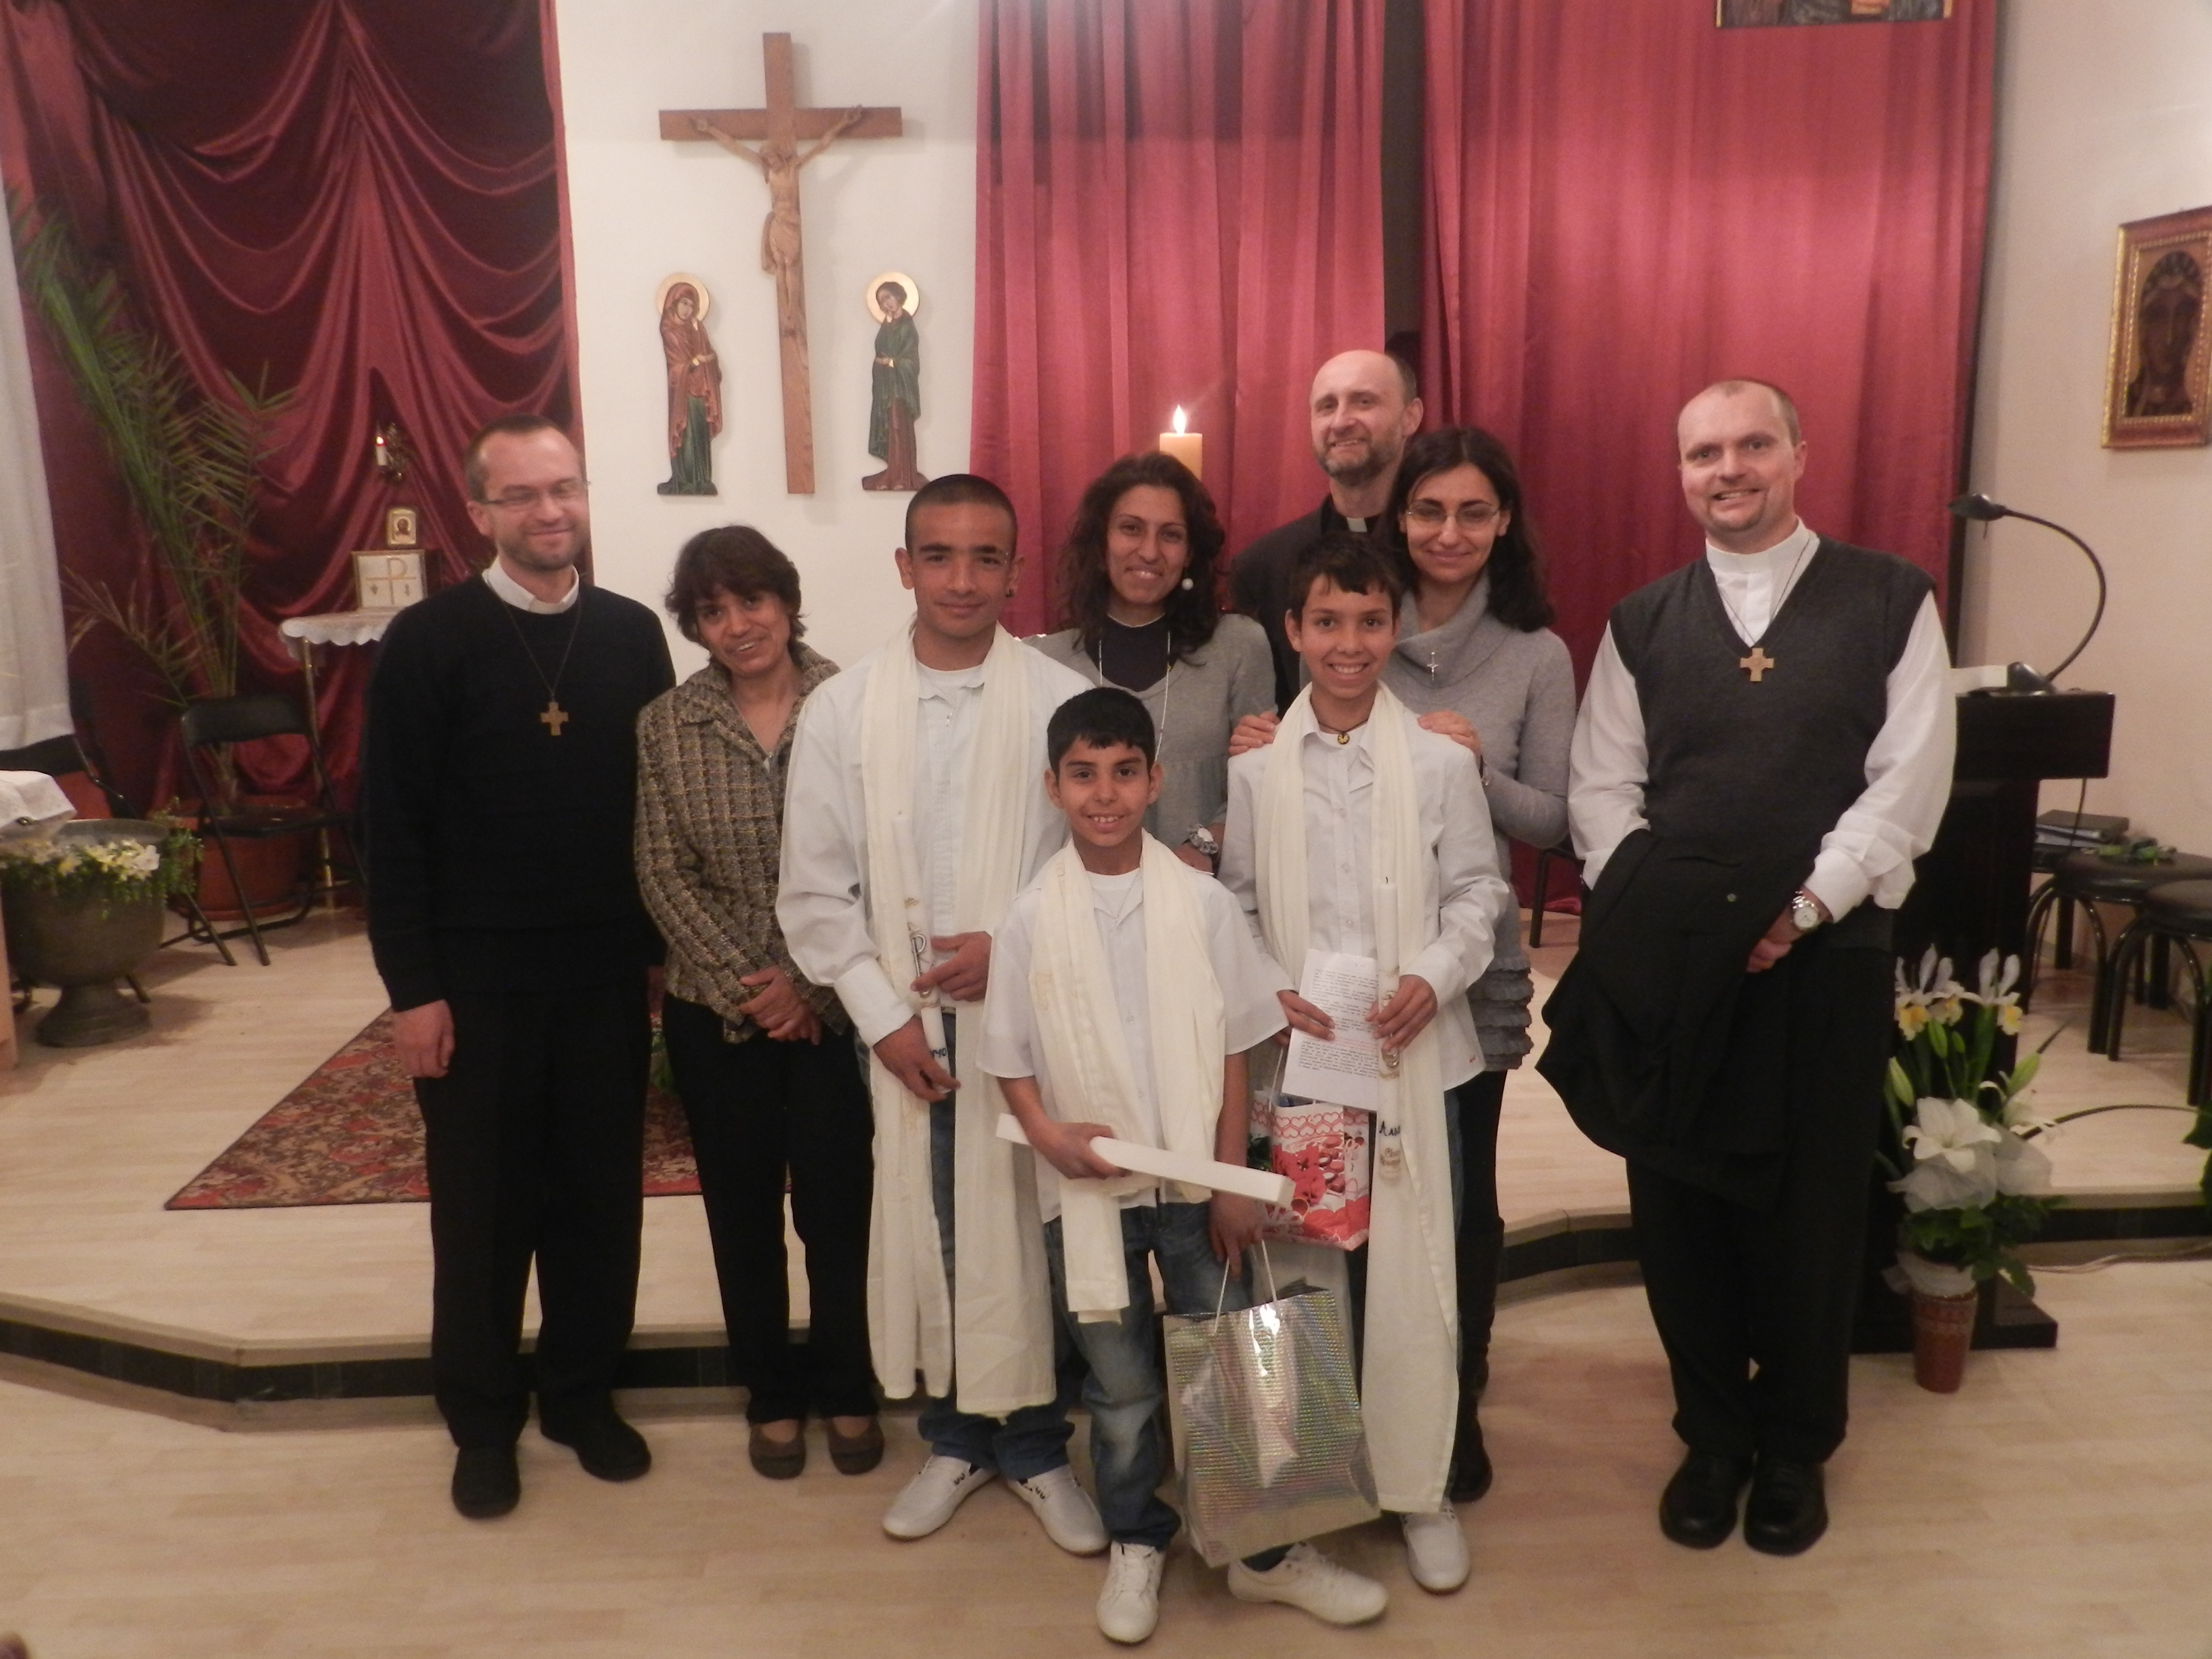 Young candidates for baptism from the Roma community in Stara Zagora, Bulgaria with Father Martin Jilek (right).